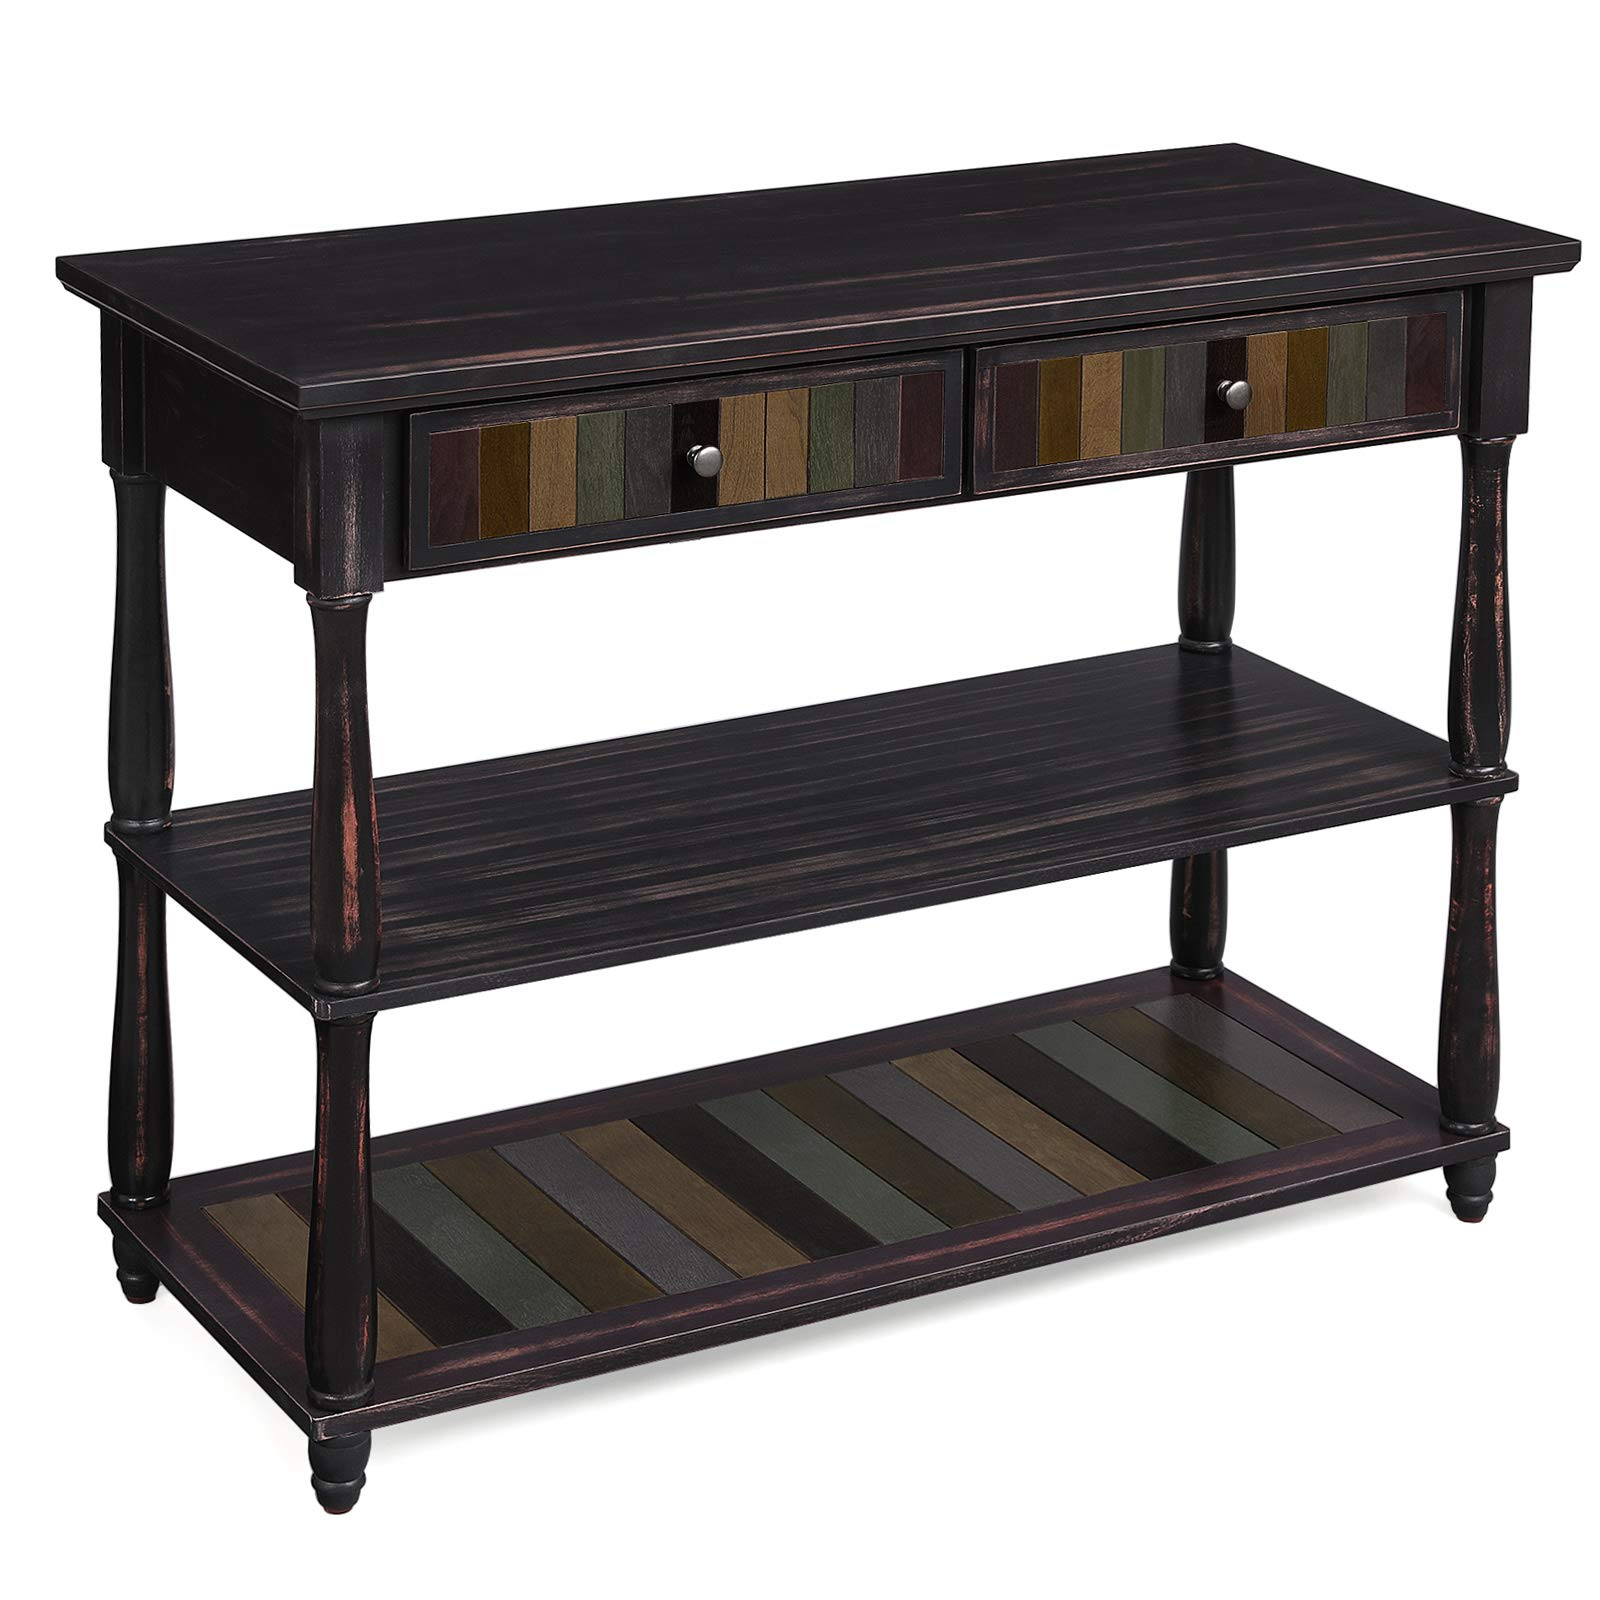 VASAGLE Console Table with Colorful Drawers, 3-Tier Entryway Table with Shelves, for Living Room, Dining Room, Hallway, Assembly Without Tools, Turned Wood Legs, Country Brown ULCT15GL by VASAGLE